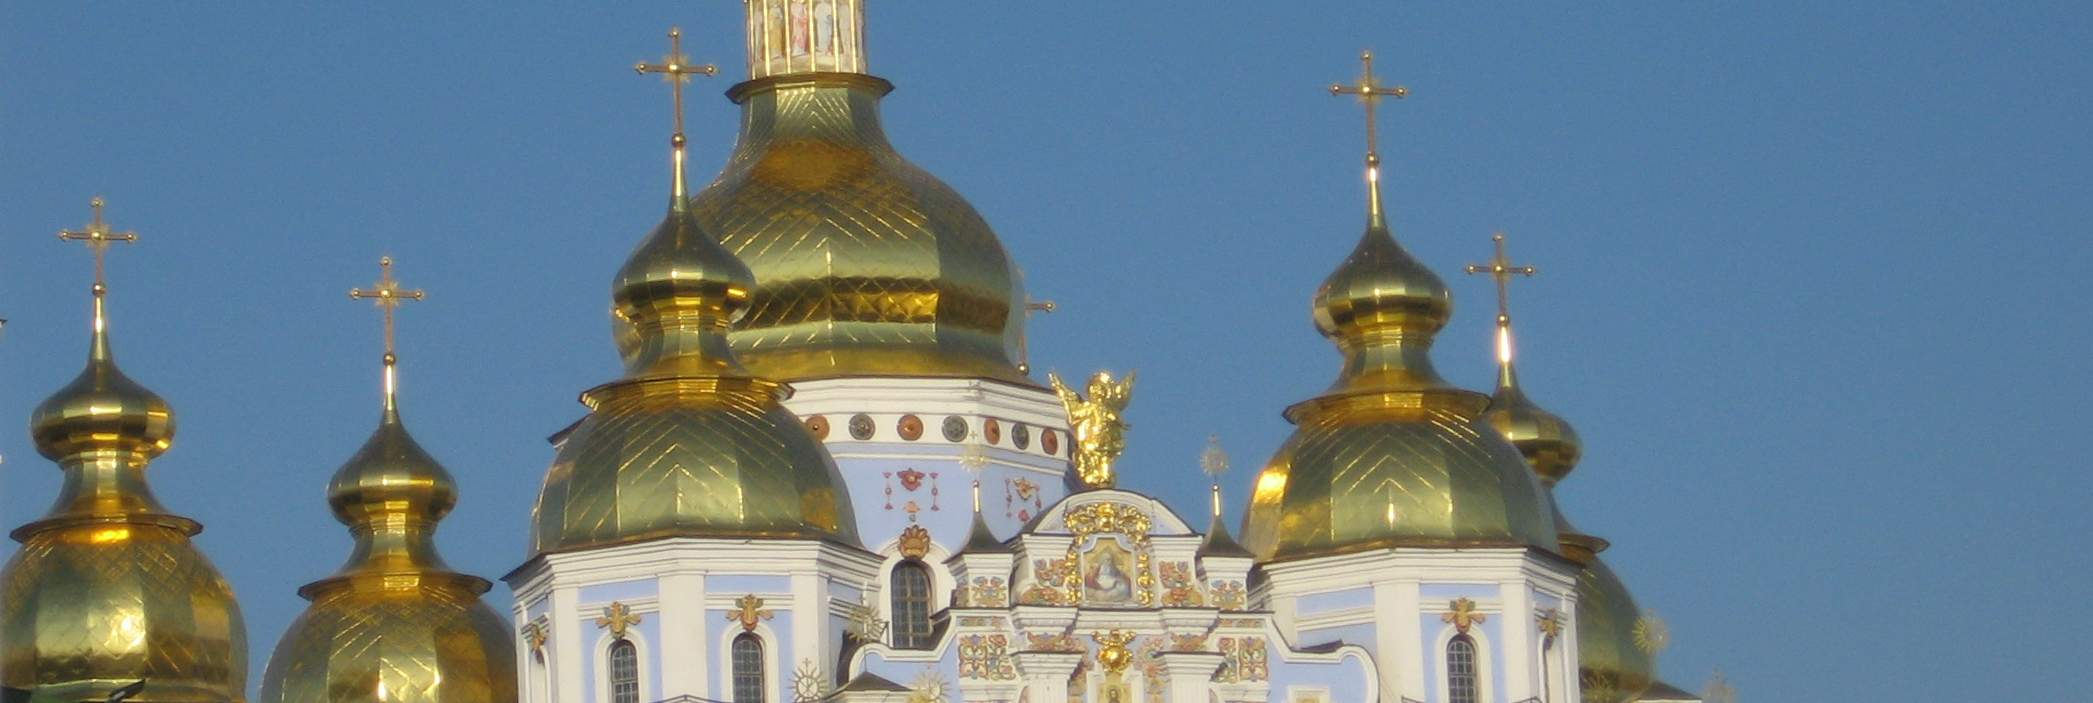 Most Important Sights in Ukraine - St Michaels Monastery